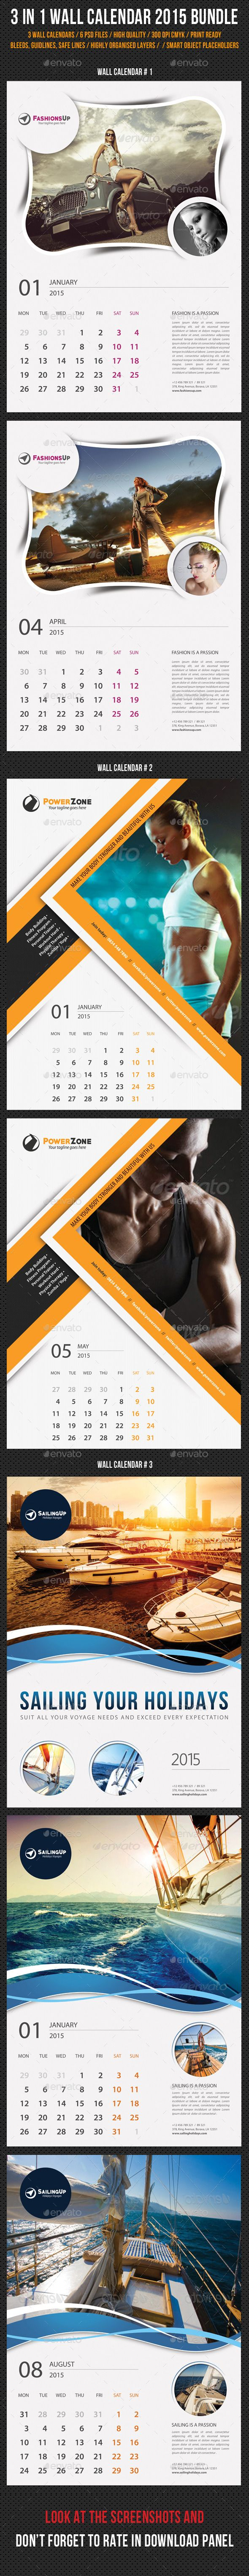 3 in 1 Wall Calendar 2015 Bundle Template | Buy and Download: http://graphicriver.net/item/3-in-1-wall-calendar-2015-bundle-v05/9559165?ref=ksioks